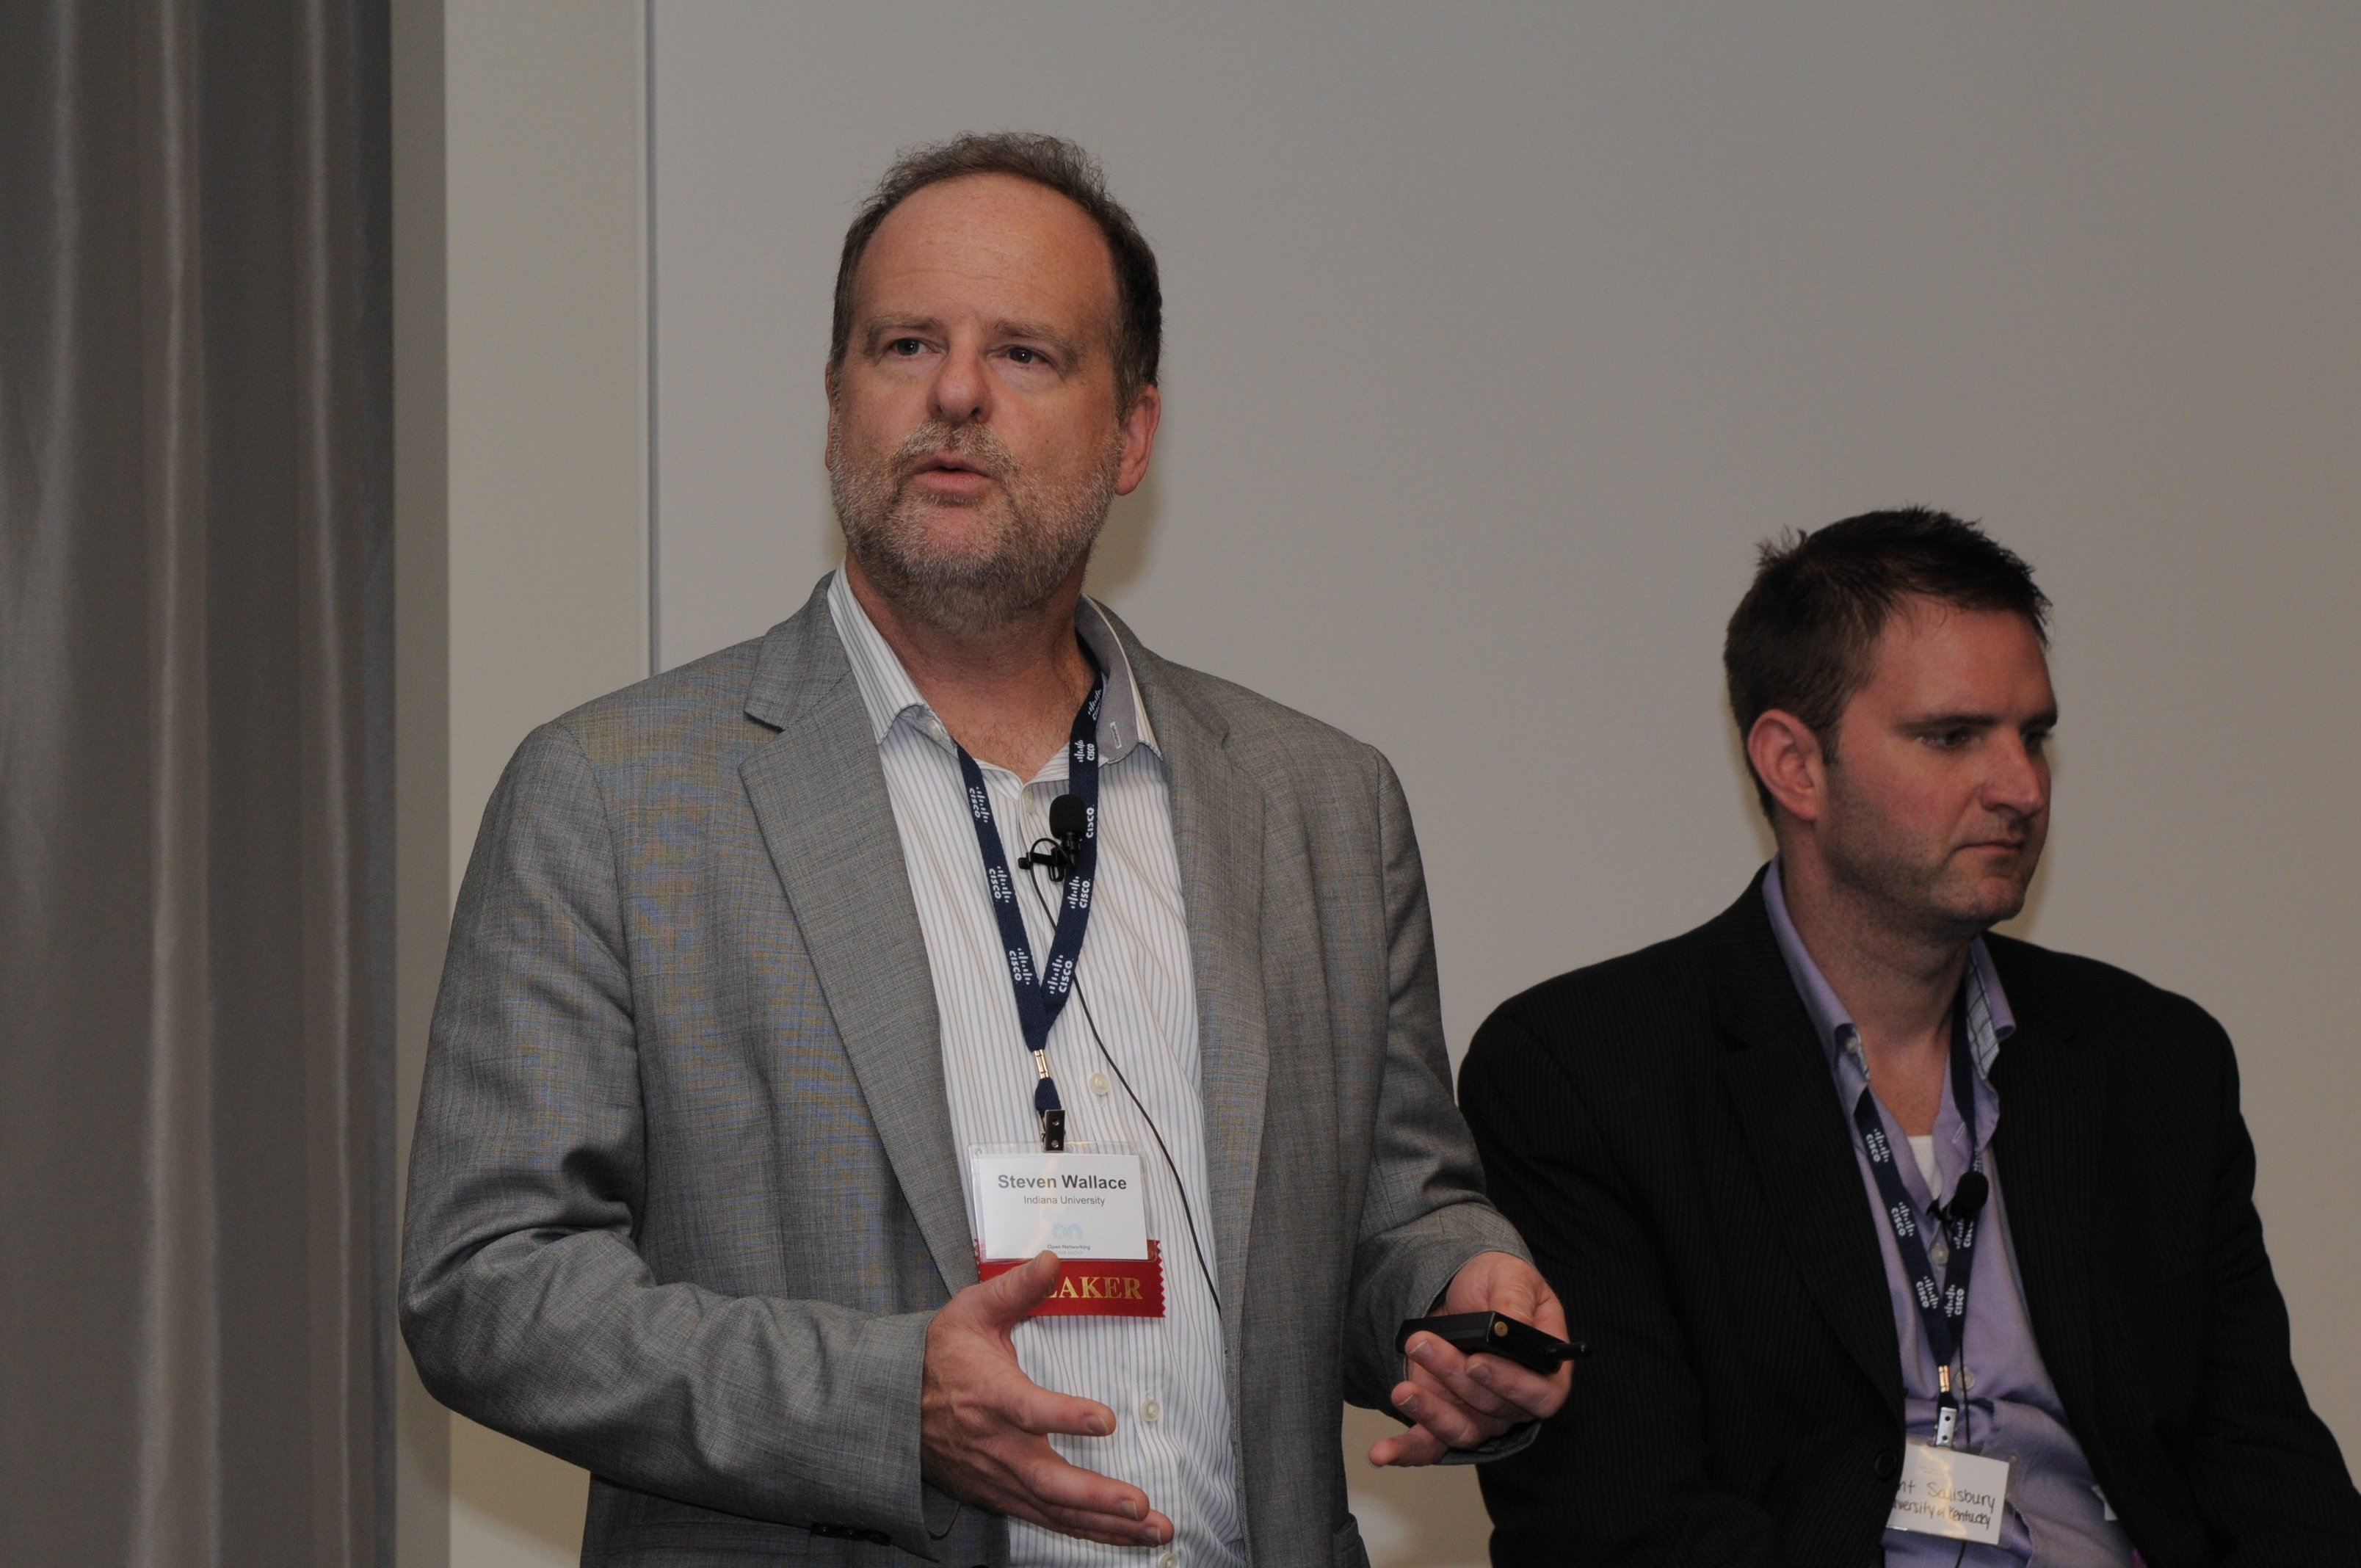 Steve Wallace, Indiana University, addresses the crowd during the SDN in University Environments panel